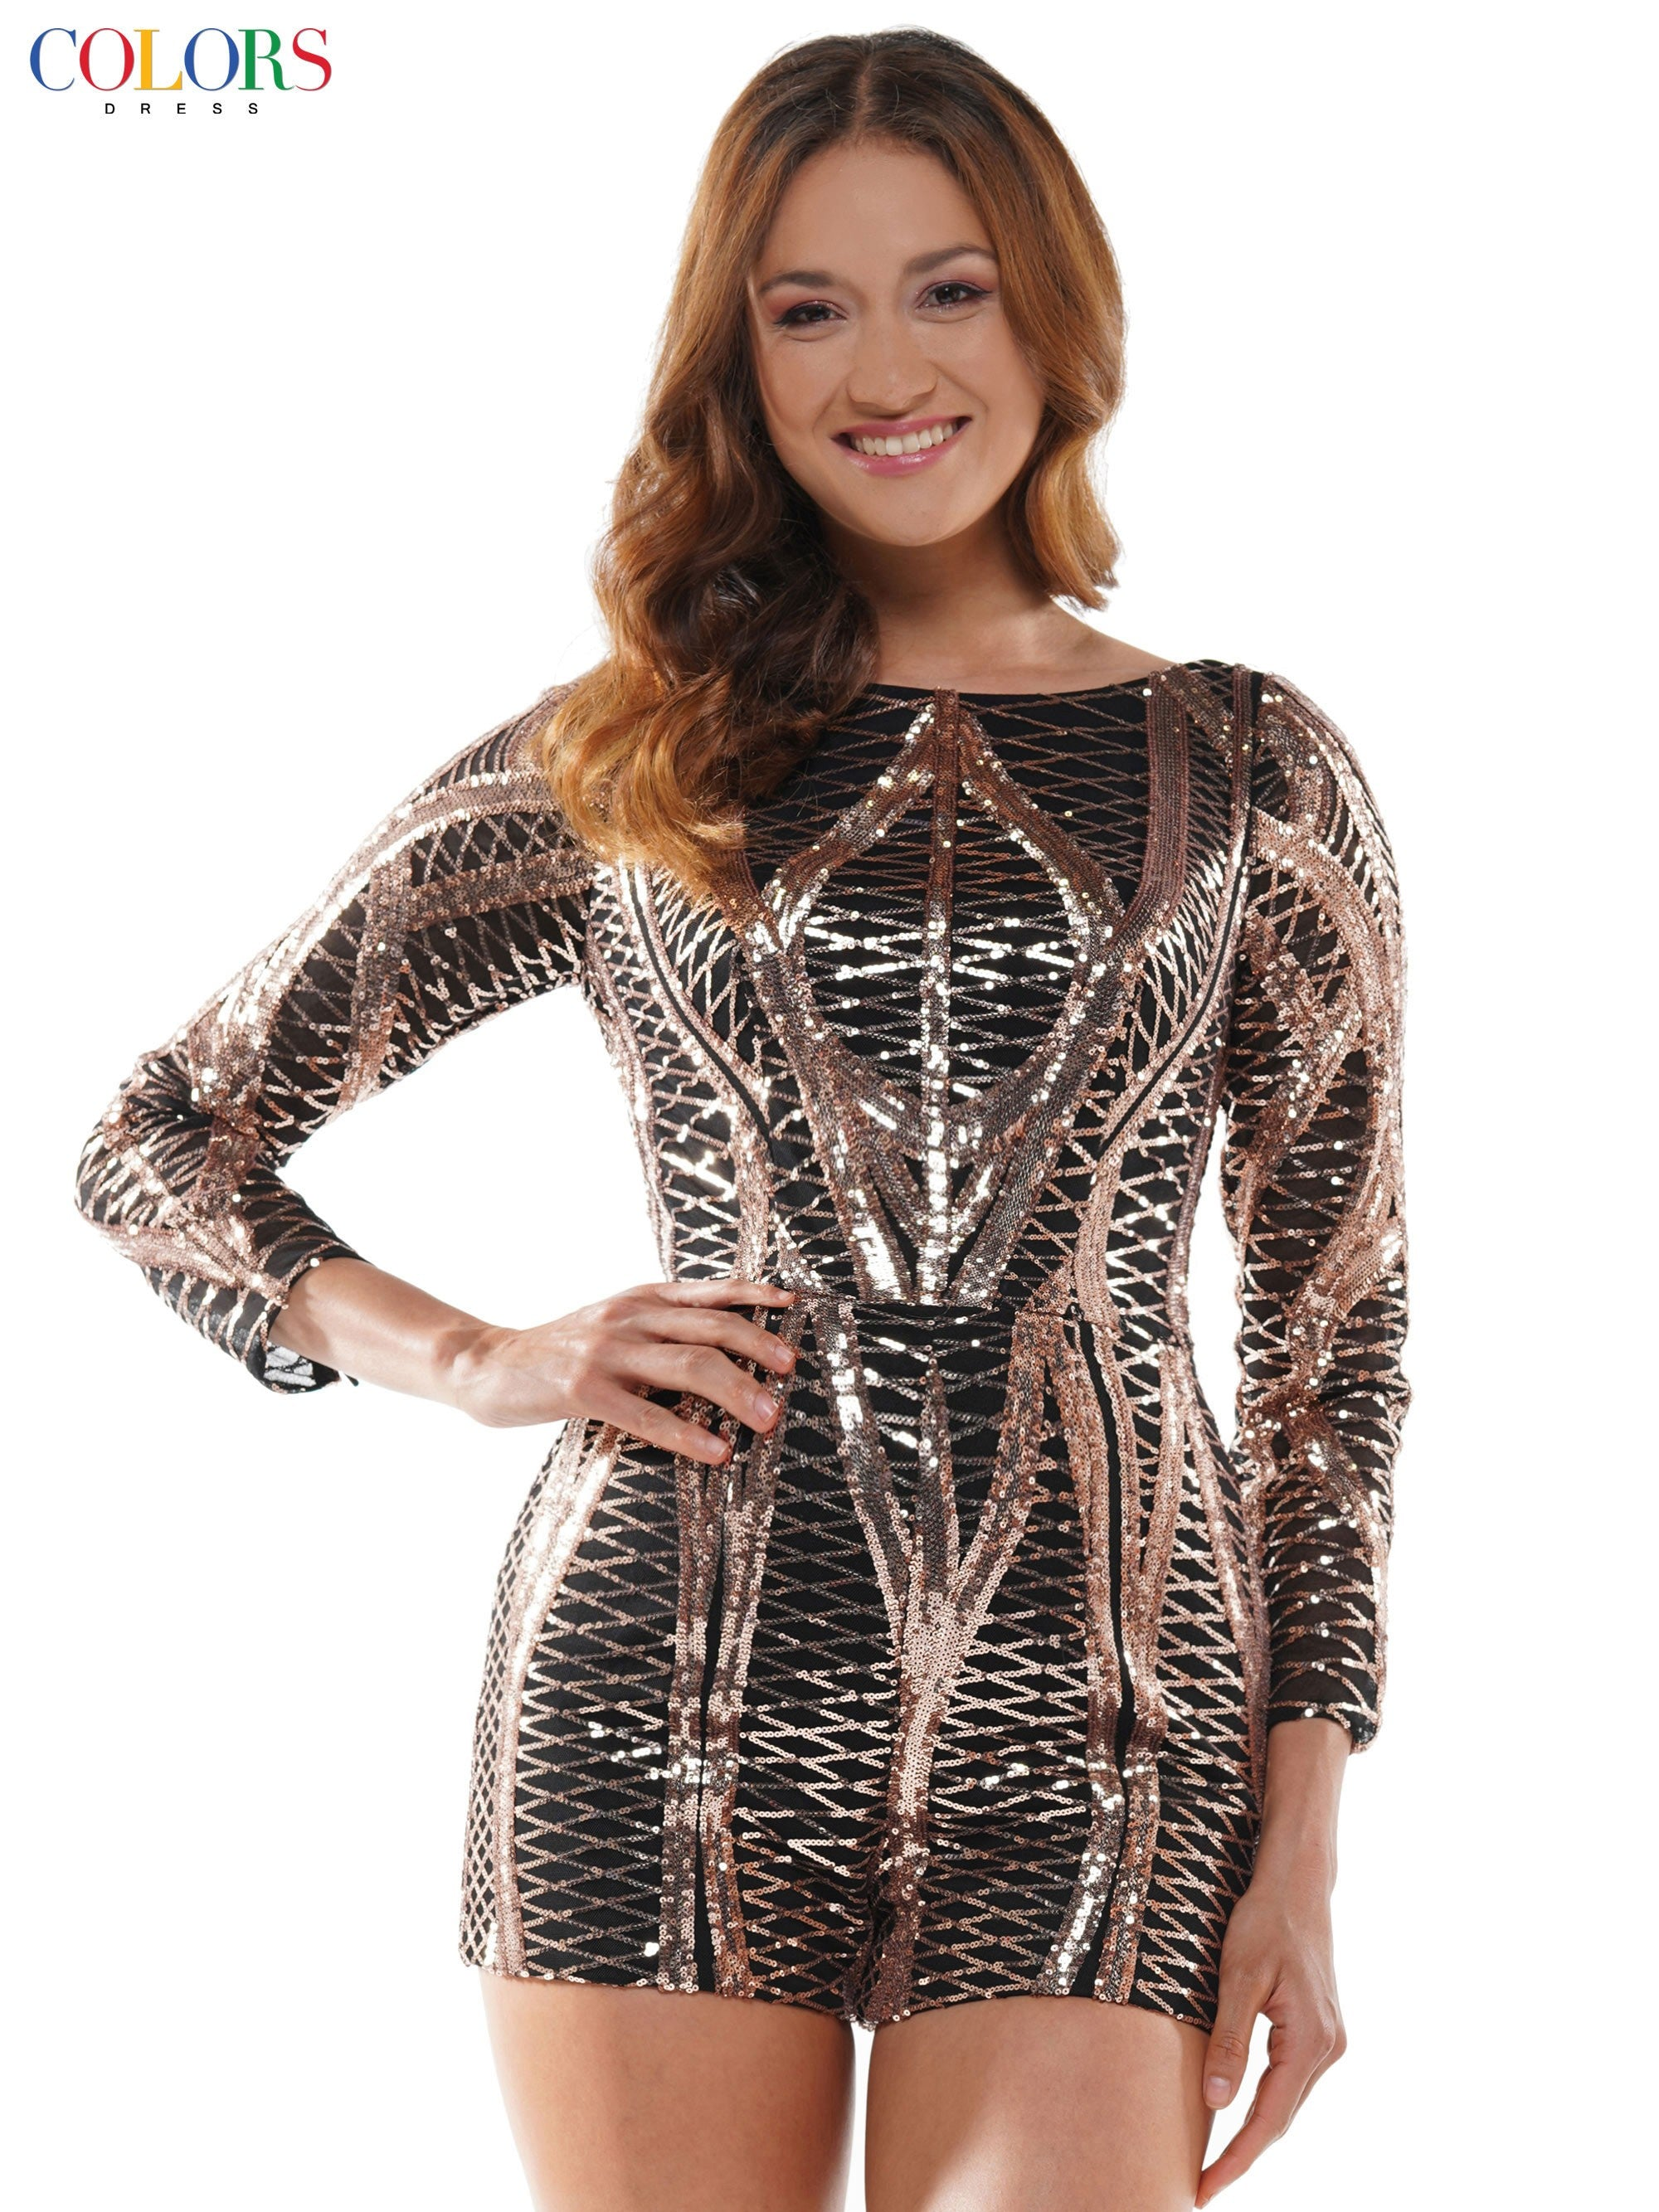 2416-Long sleeve sequin romper with glitter mikado over-wrap skirt